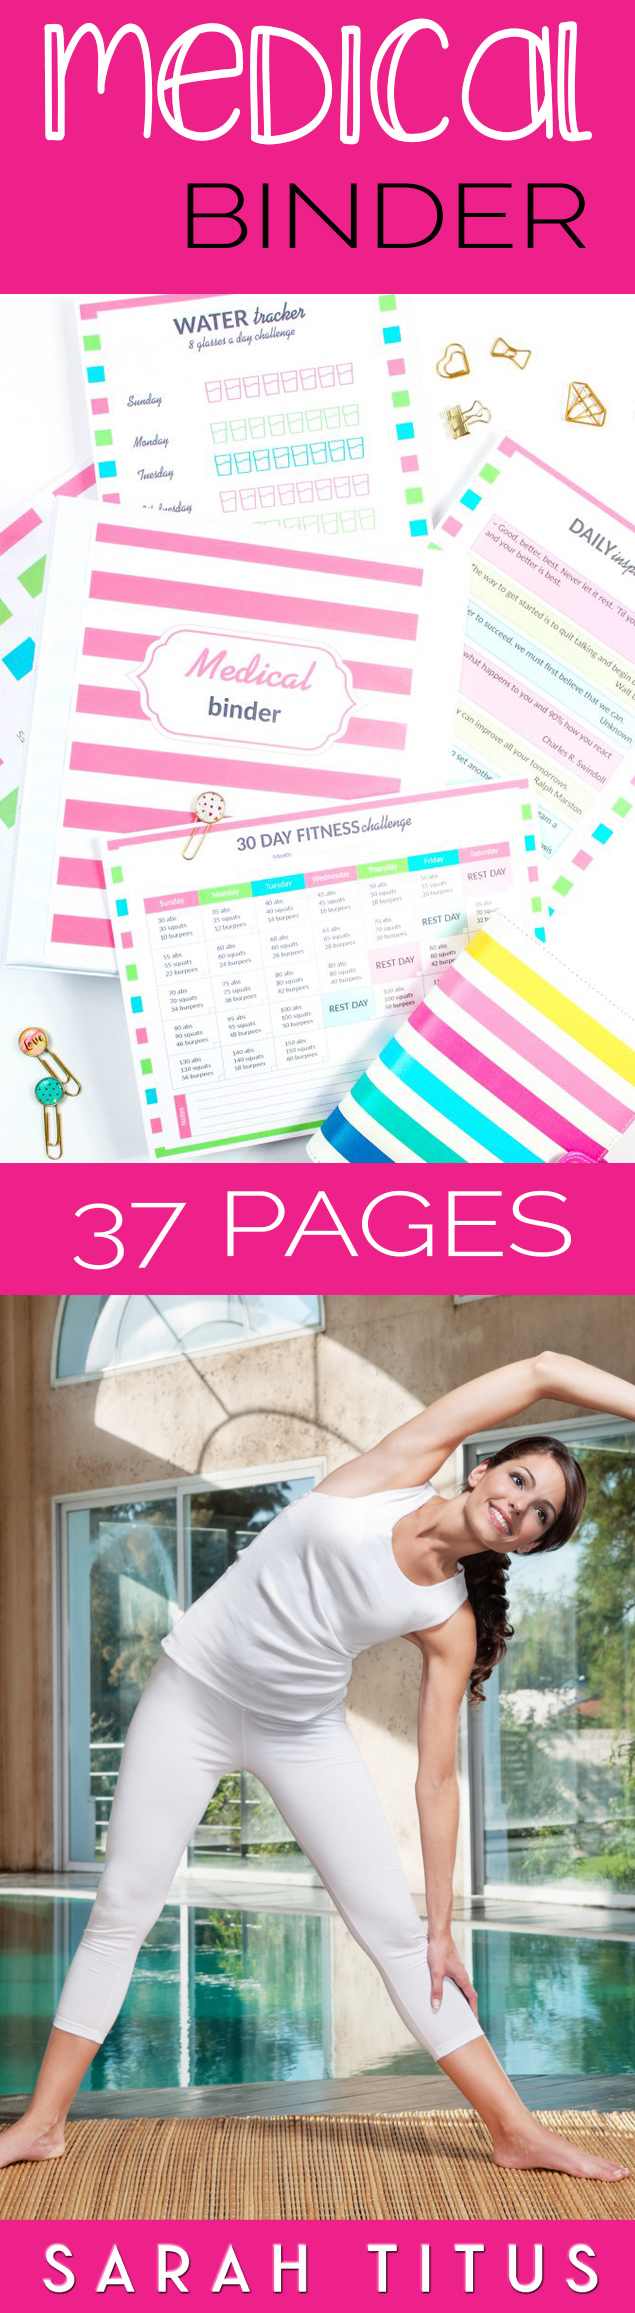 This Medical Binder has EVERYTHING you need with over 40 pages, from medical information, weight loss tracker, personal workout plan, fitness challenge, daily inspiration, family health history, and much, much more! #medicalbinder #freebinderprintables #freeprintables #medicalprintables